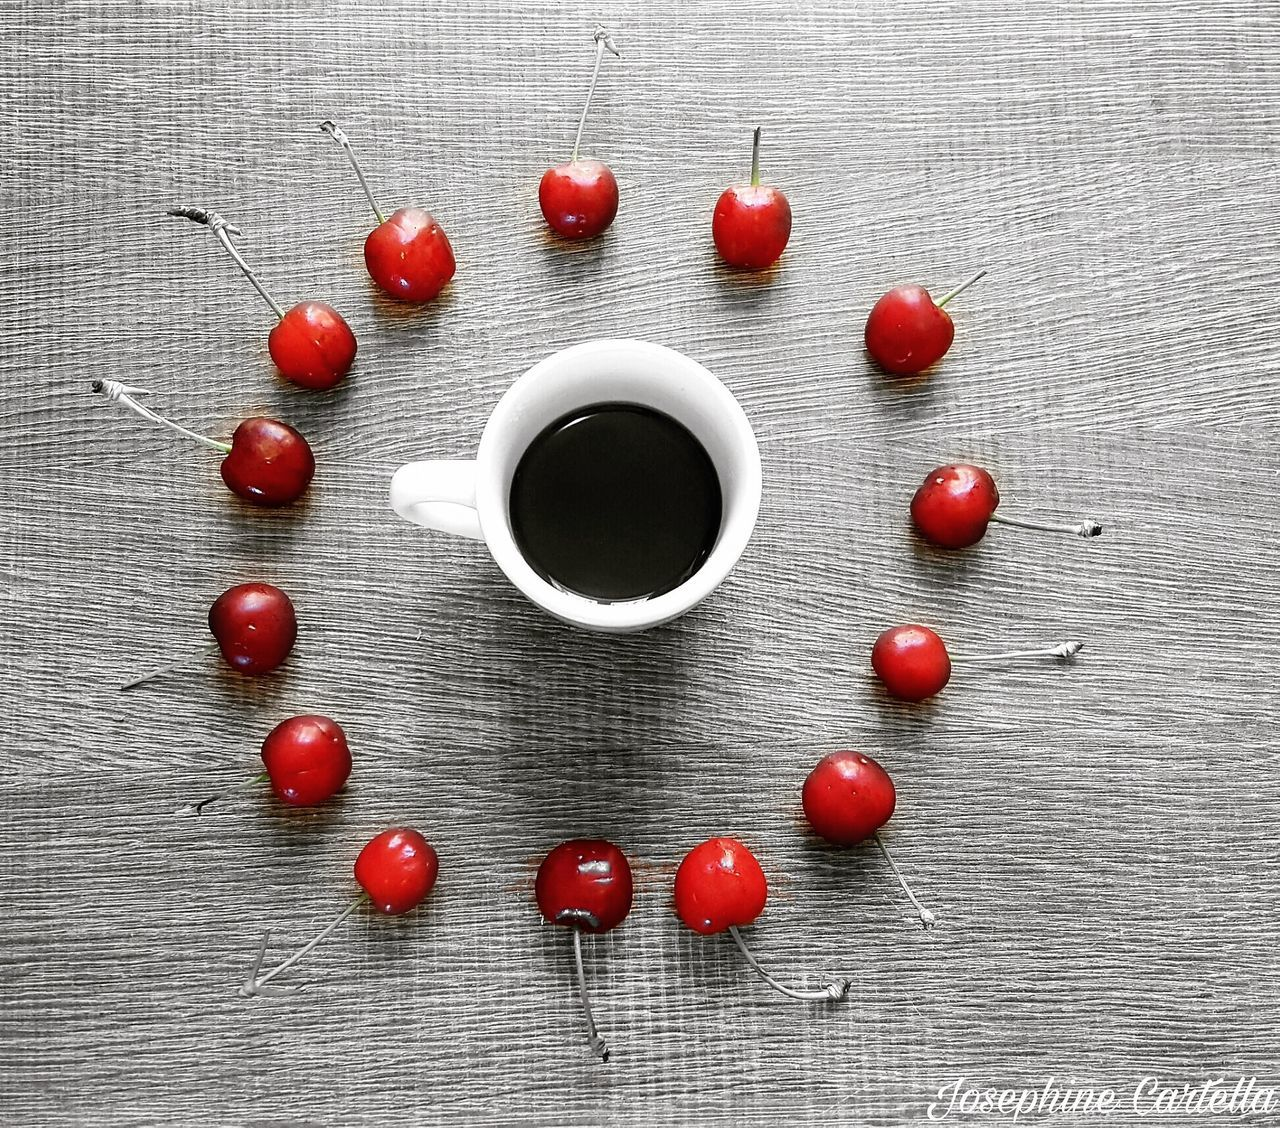 Red Sweet Food Food Photograph Photographer Blackandwhite Black And White Coffee Coffee Time Caffè Cherries Cherry Italy Magic Home Scenics Lovephotography  Beautiful Ph Magic Moments Fragility Art Artistic Loveart Artphotography